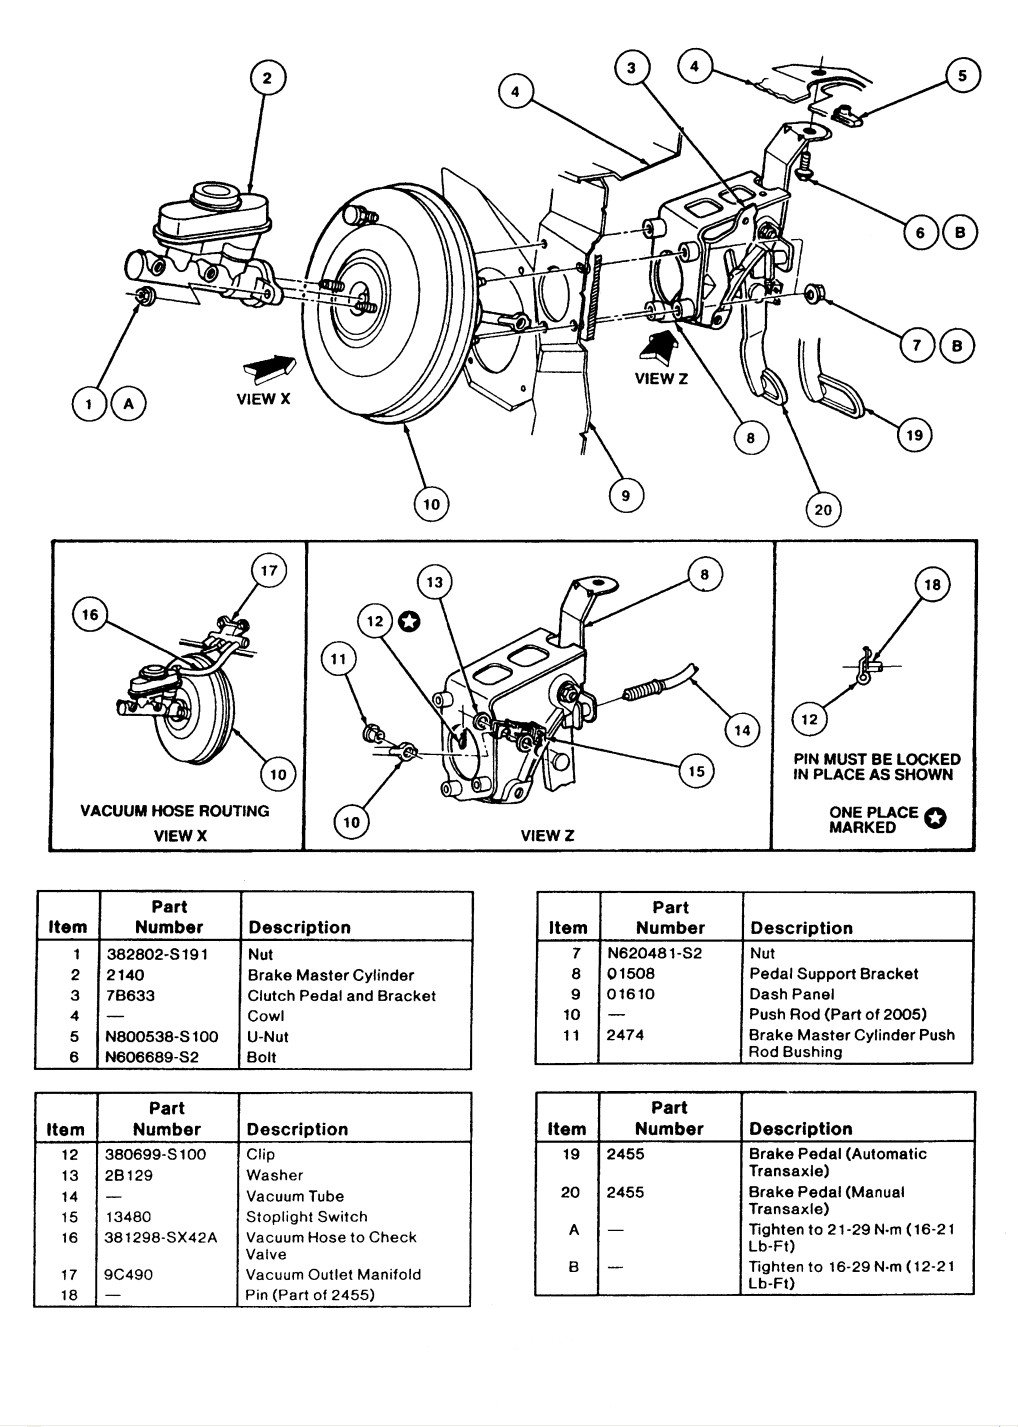 I Have A 1995 Ford Tauras Sho It Has Abs Brakes Just Replaced The Diagram With Booster Being Defective You Very Stiff Pedal And Feels Like Are Not Even Working